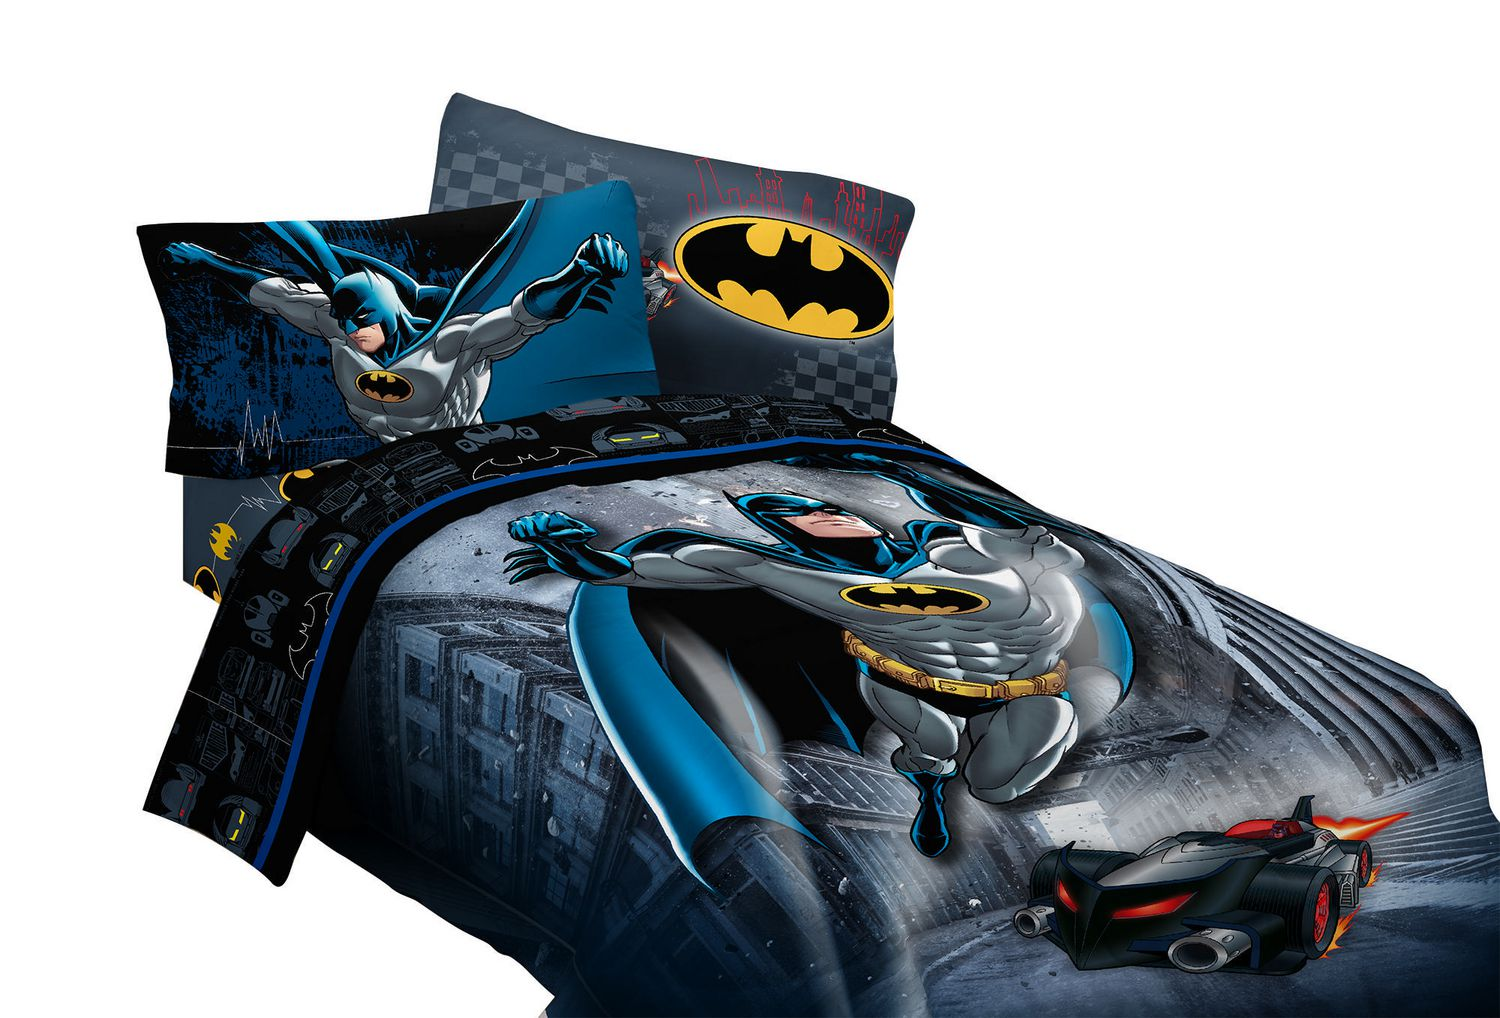 Couverture Lit 2 Places Couvre Lit Pour Lit à 1 Place 2 Places Guardian Speed Batman De Warner Bros